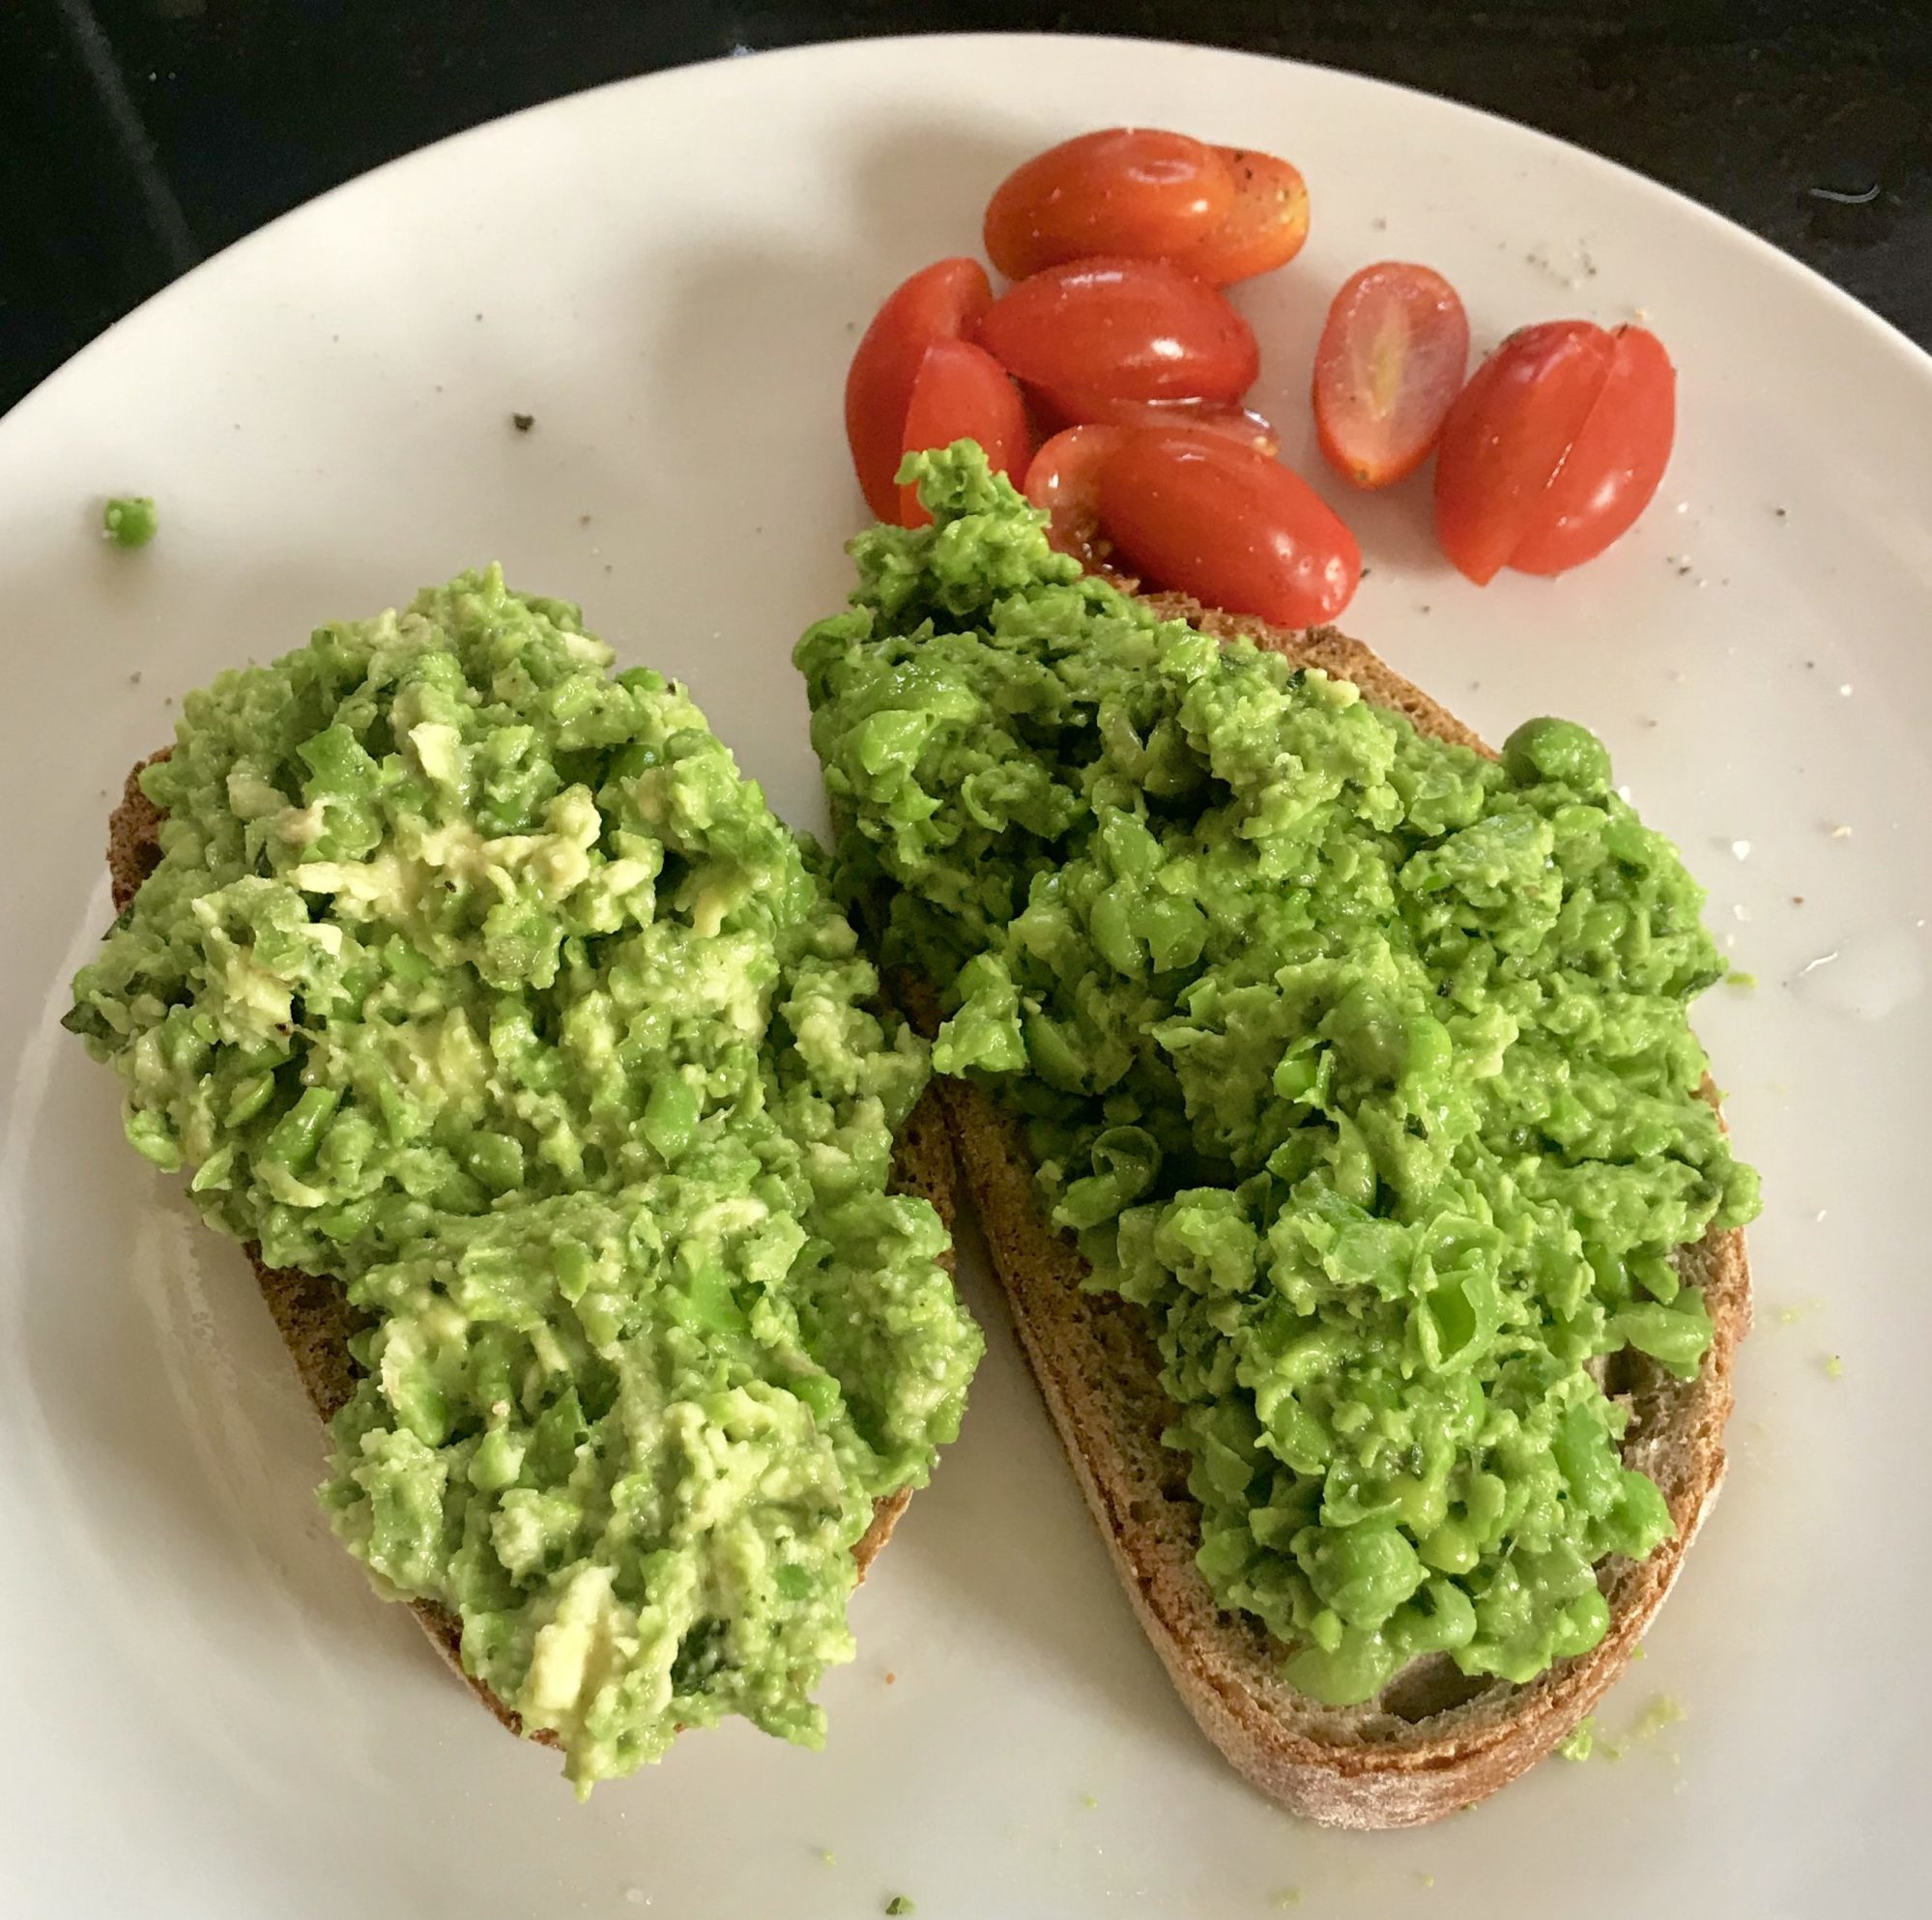 Peas and Avocado on Sourdough Recipe The Mindful Cook